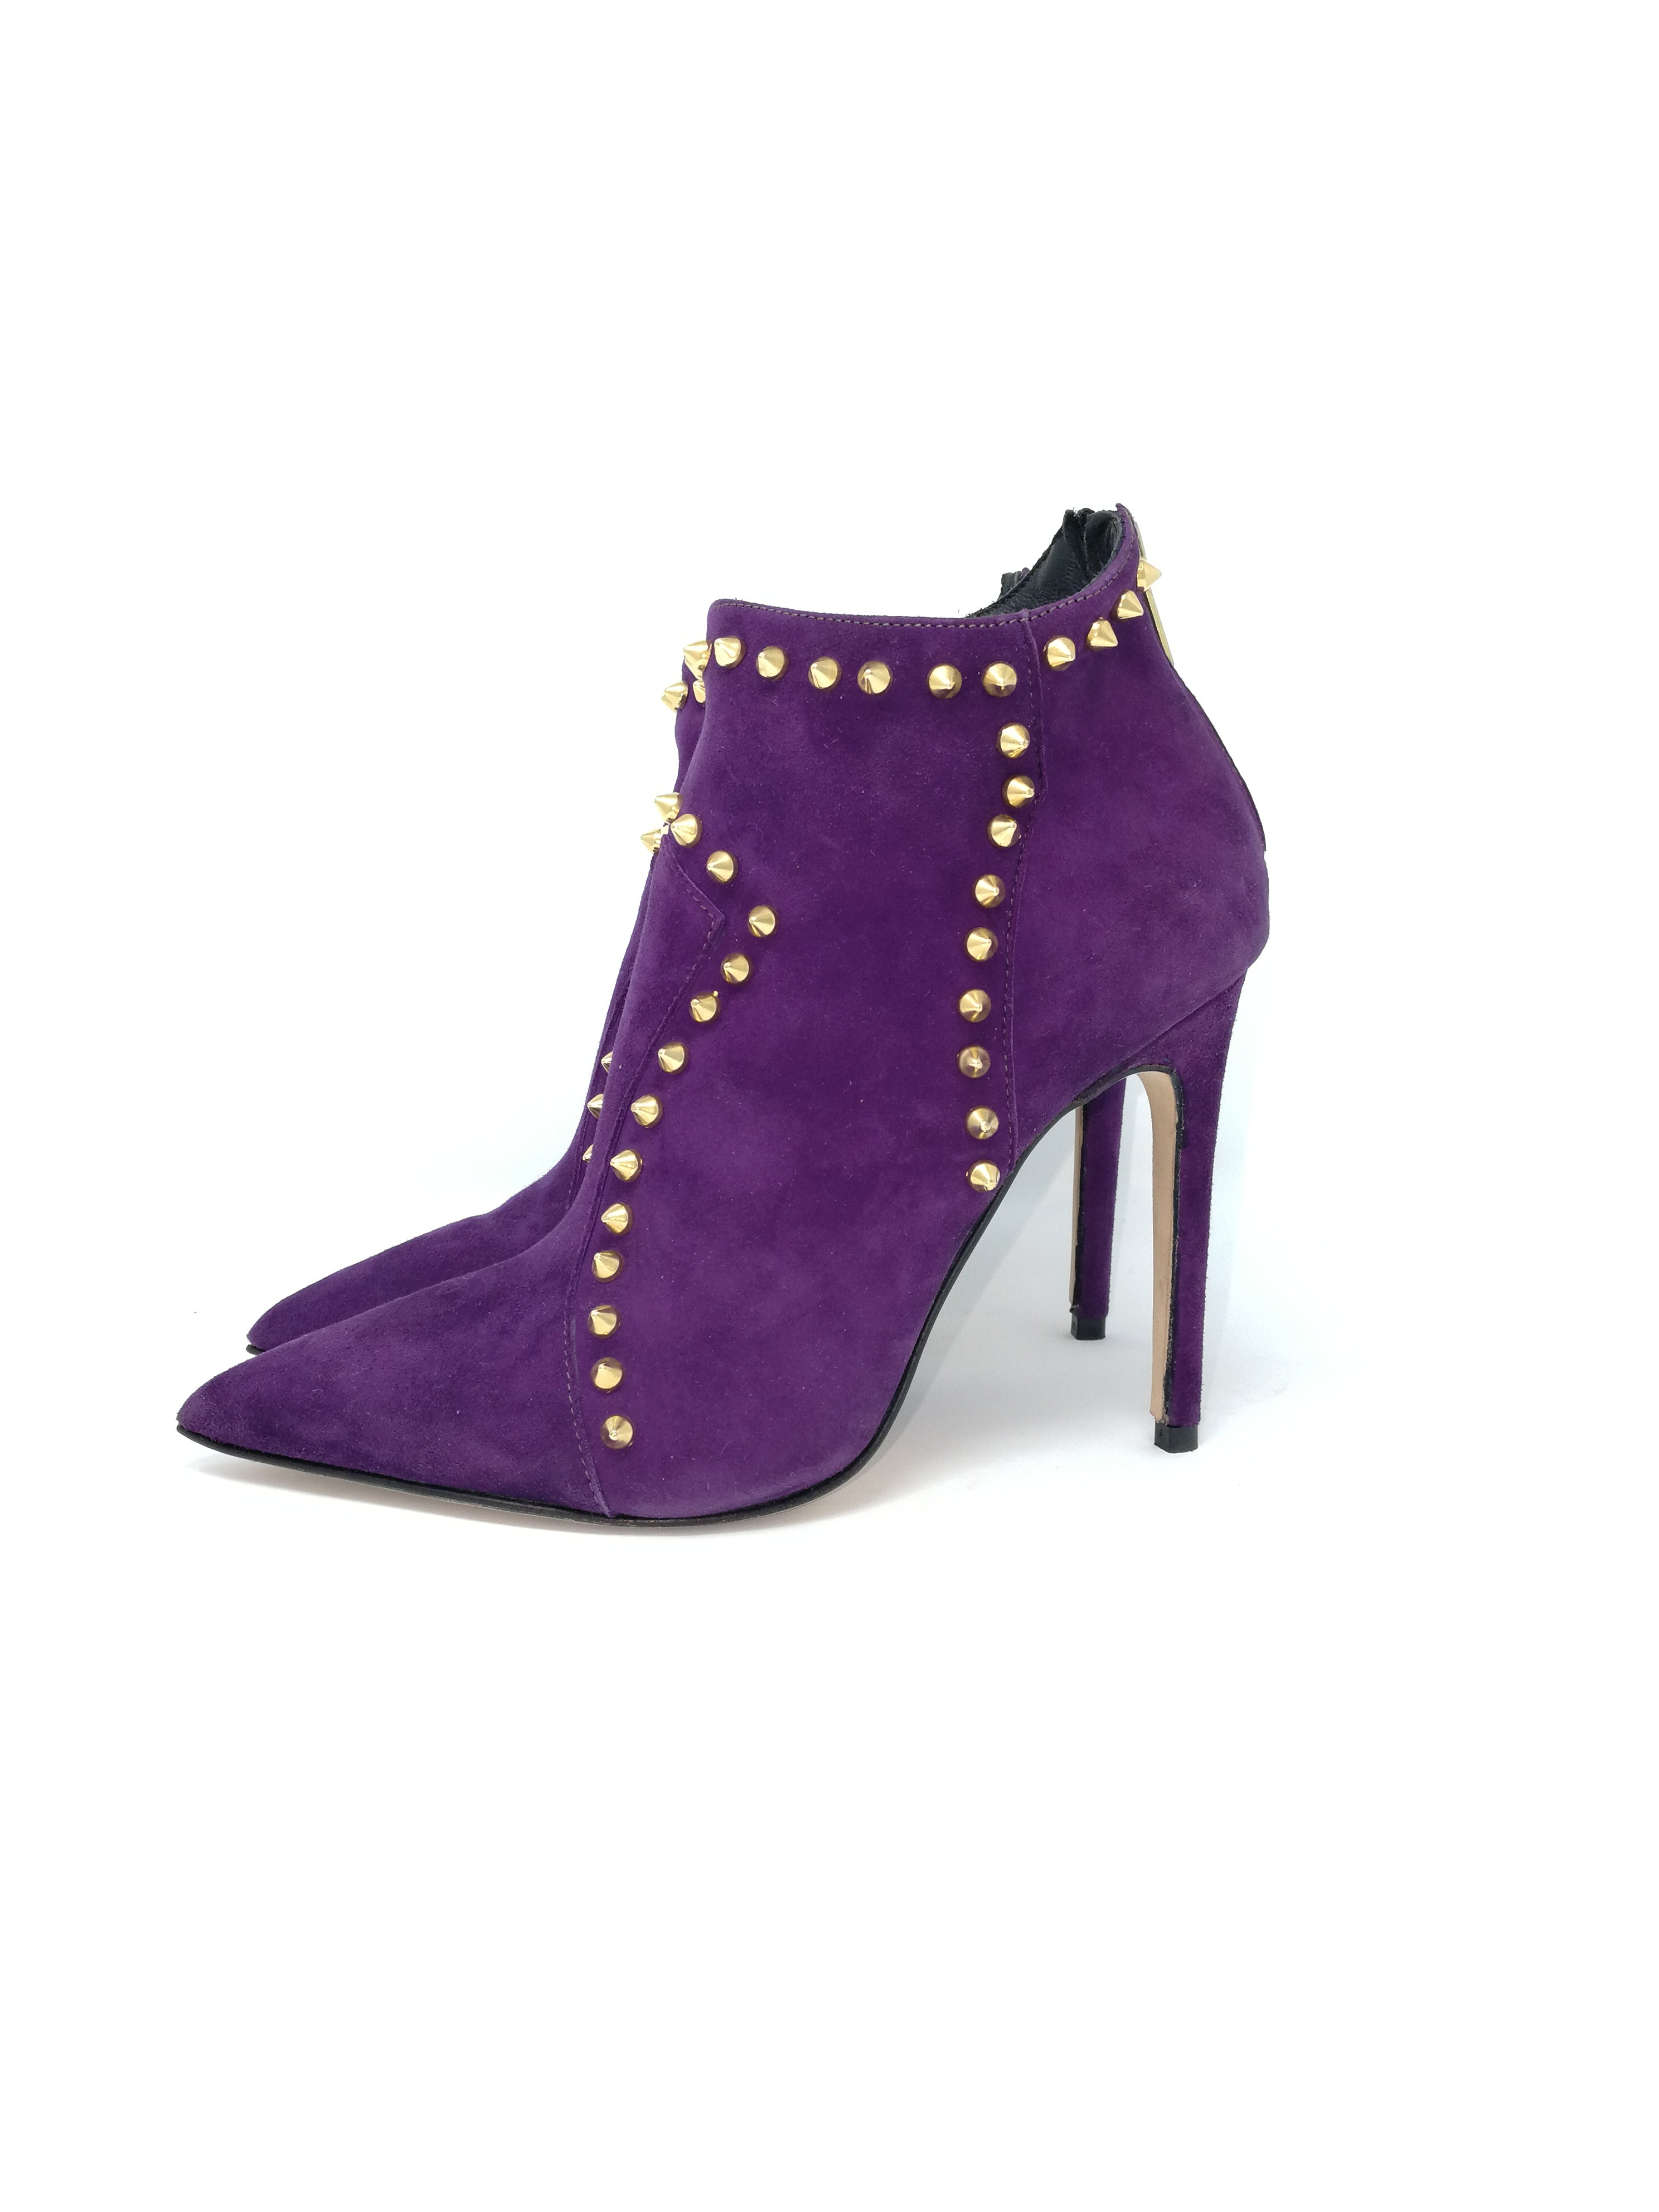 ida violet suede - Salvatore Caputo Shoes